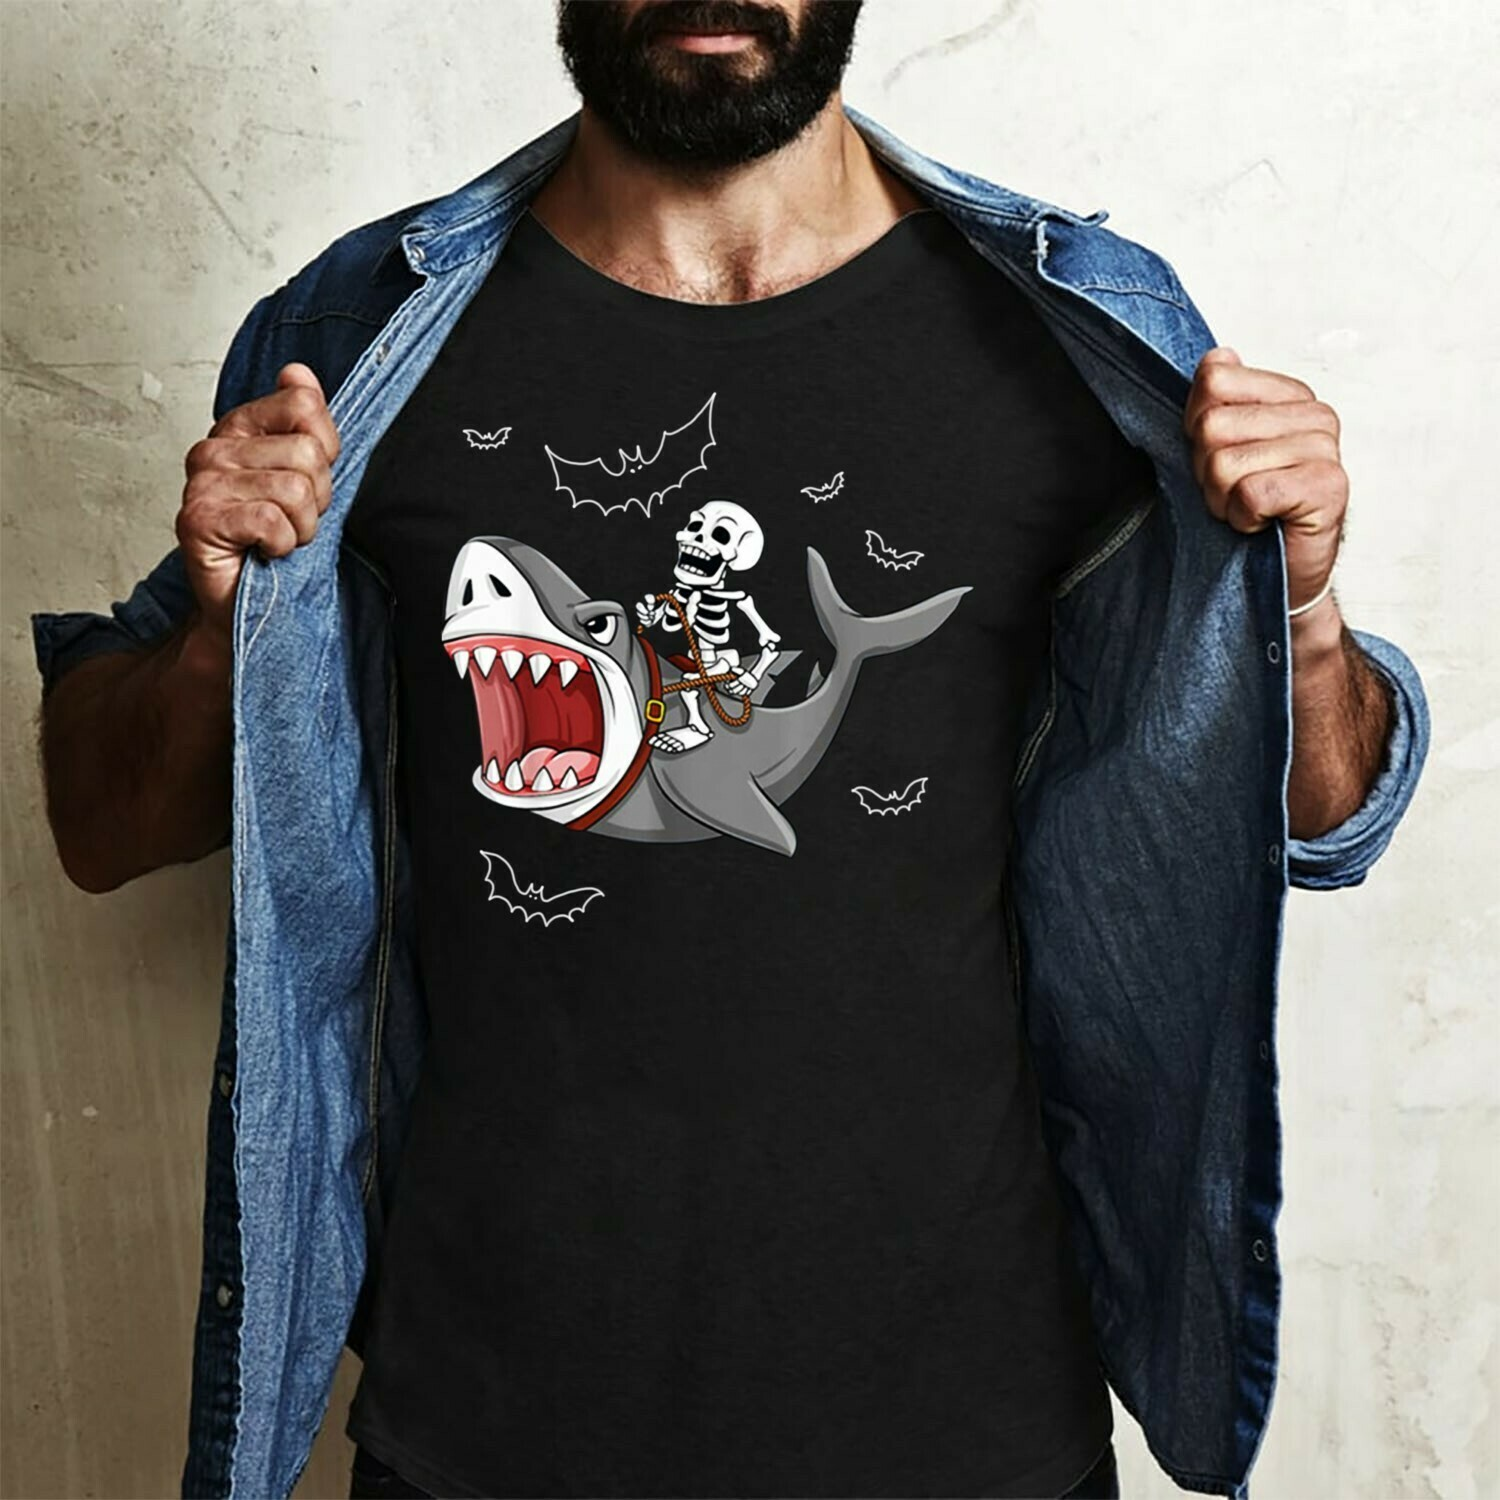 Skeleton Riding Shark Shirt Skeleton Skull Shark Jawsome Not So Scary Halloween Horror Costume,Ghost Bat Family Vacation Party Gifts T-Shirt Long Sleeve Sweatshirt Hoodie Jolly Family Gifts